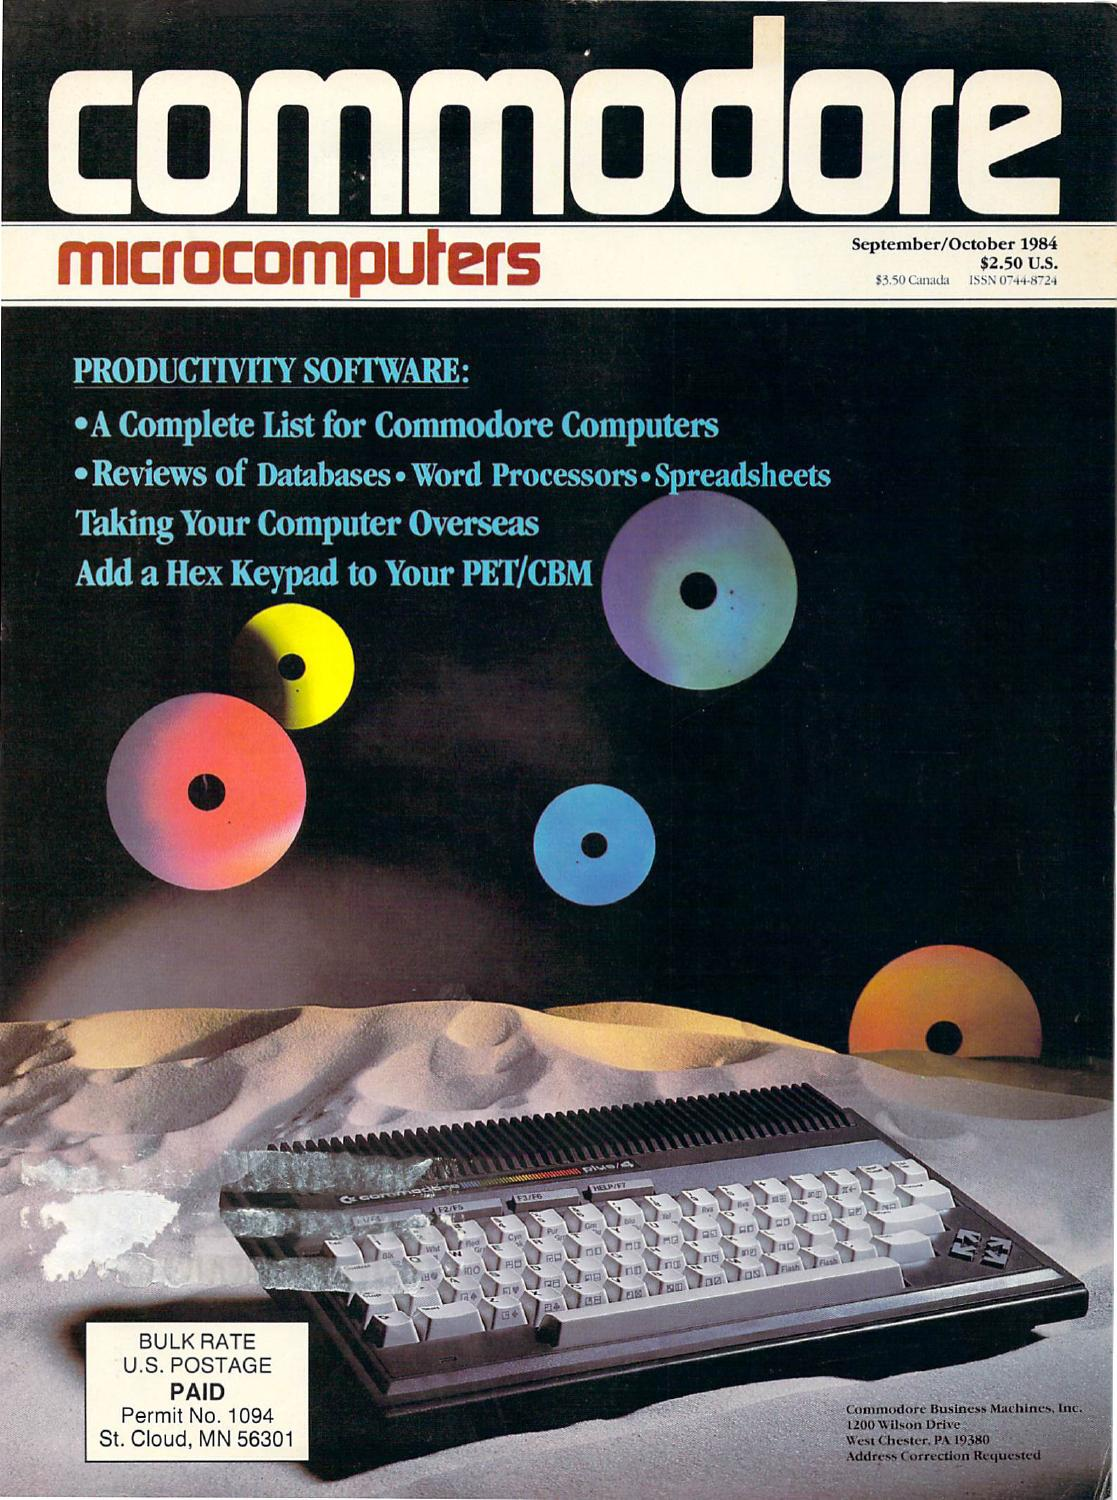 Commodore_MicroComputer_Issue_31_1984_Sep_Oct by Zetmoon - issuu